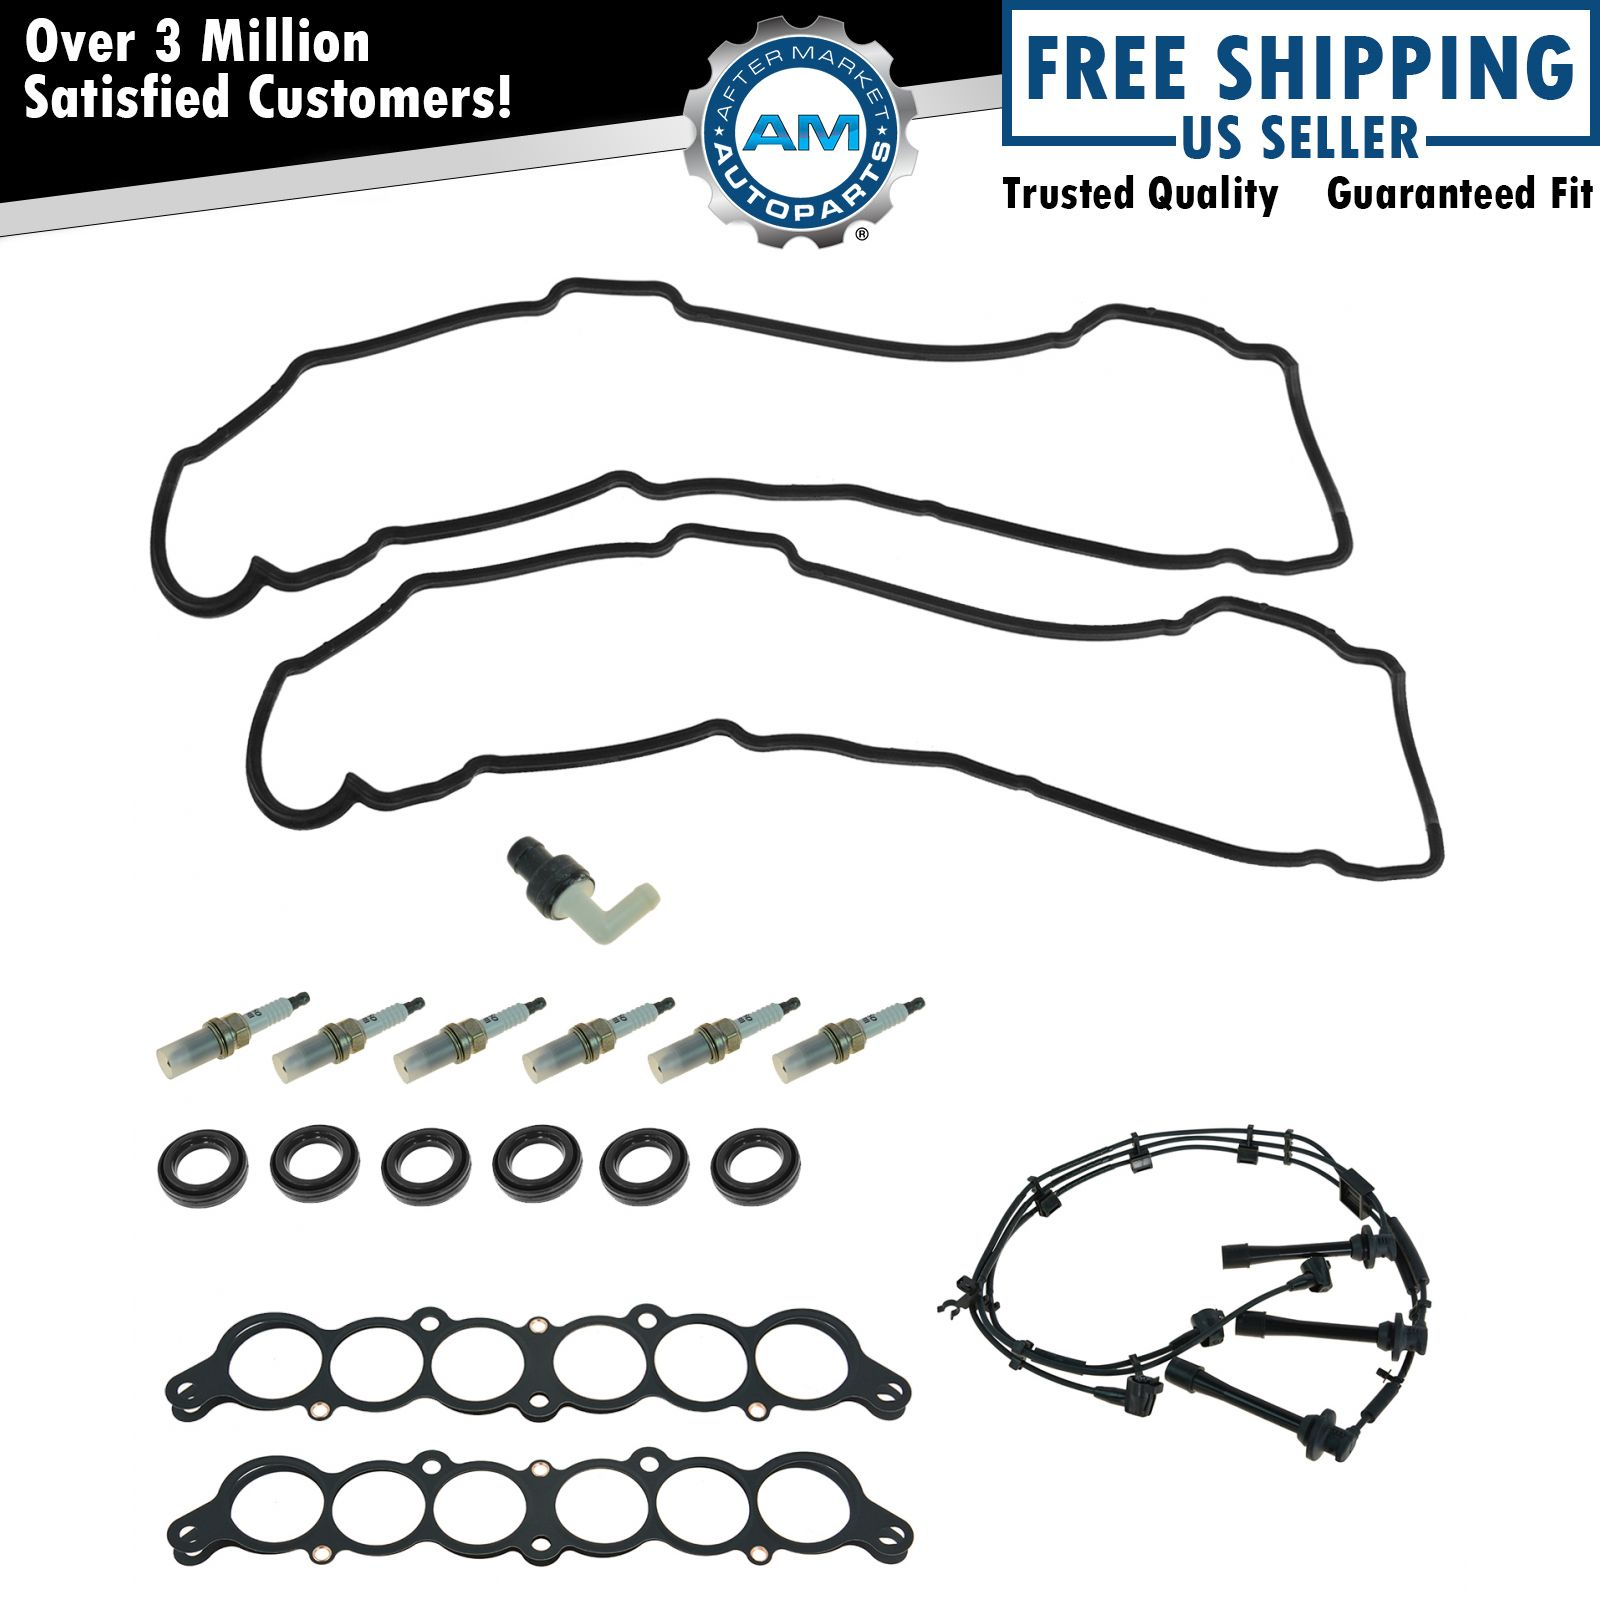 Oem Tune Up Kit Amp Gasket Set 18 Piece For Toyota Lexus V6